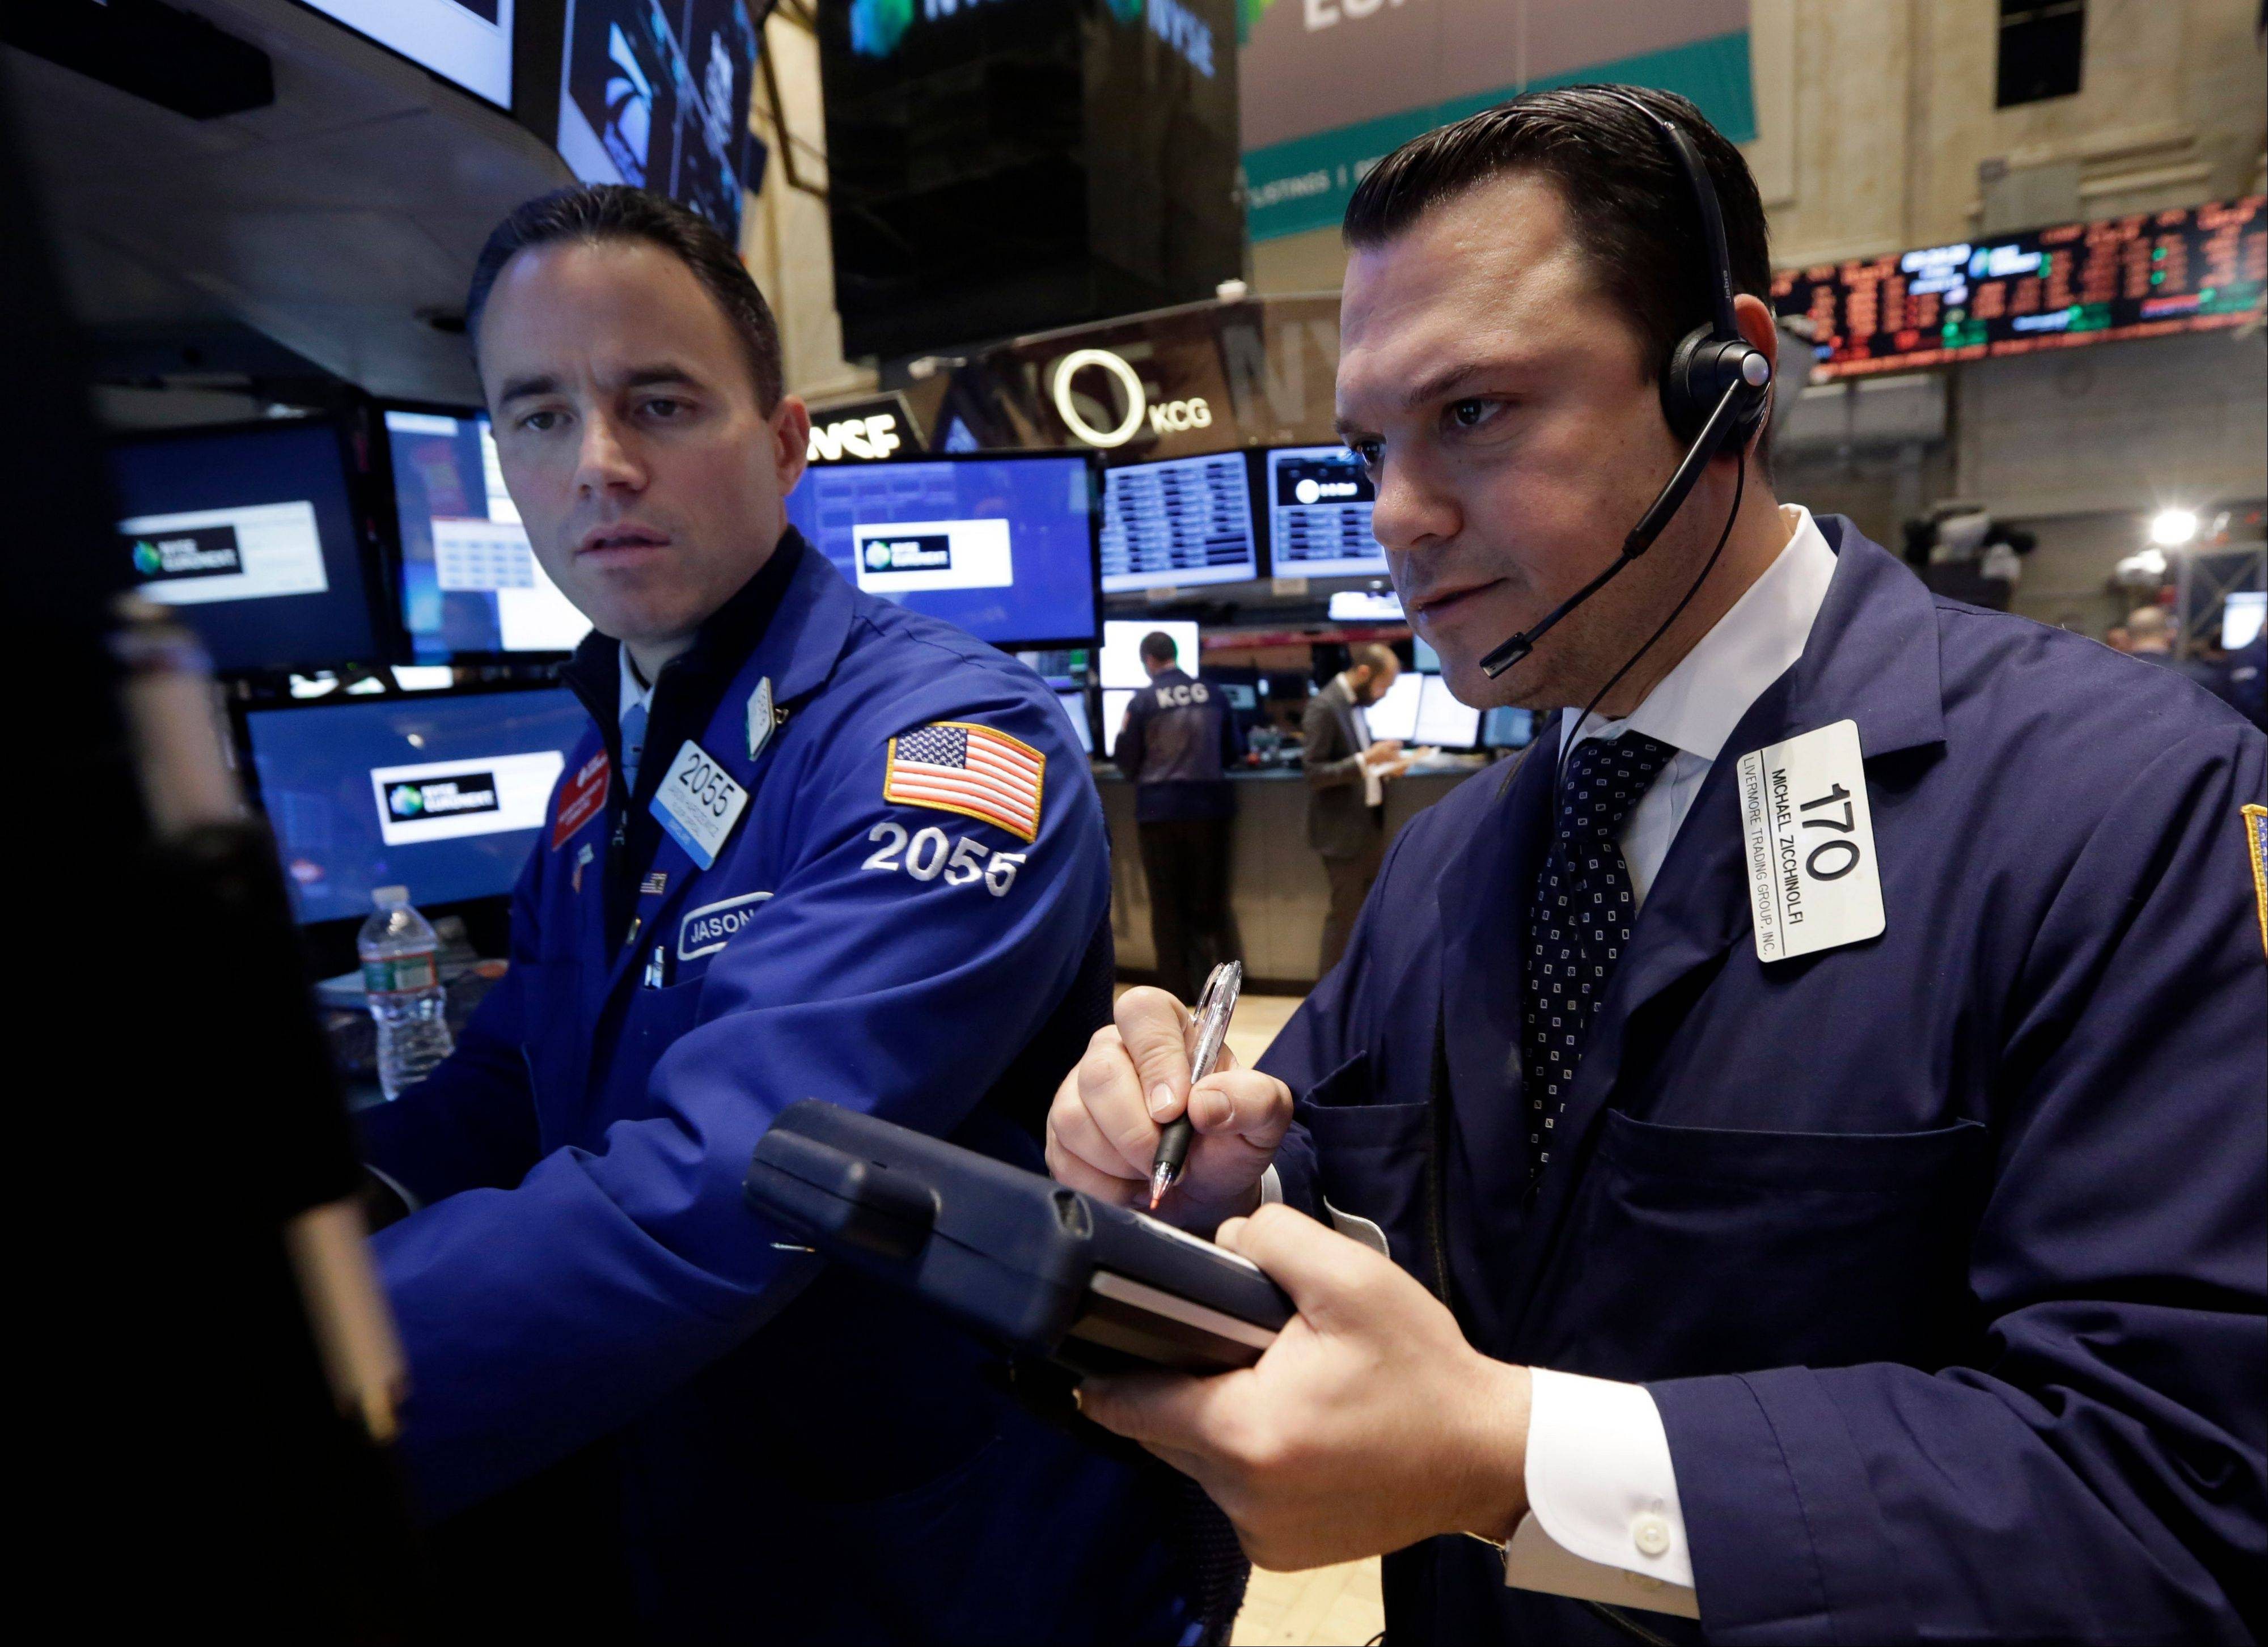 U.S. stocks fell Monday, sending the Standard & Poor's 500 Index toward its biggest loss in two months, amid concern over valuations after benchmark indexes rallied to all-time highs in 2013.